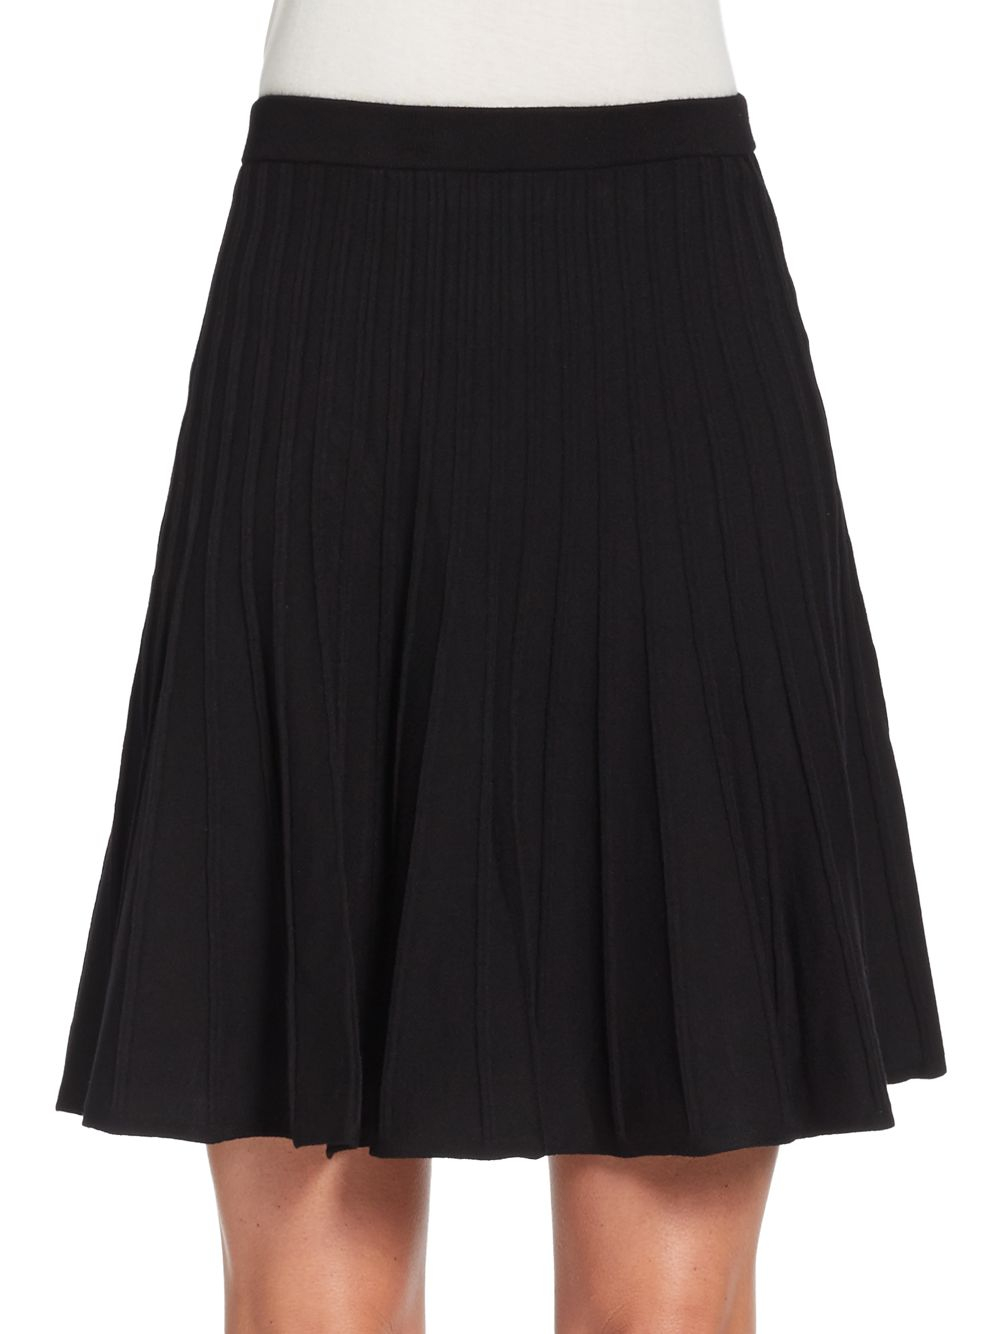 Saks fifth avenue black label Knit Circle Skirt in Black Lyst